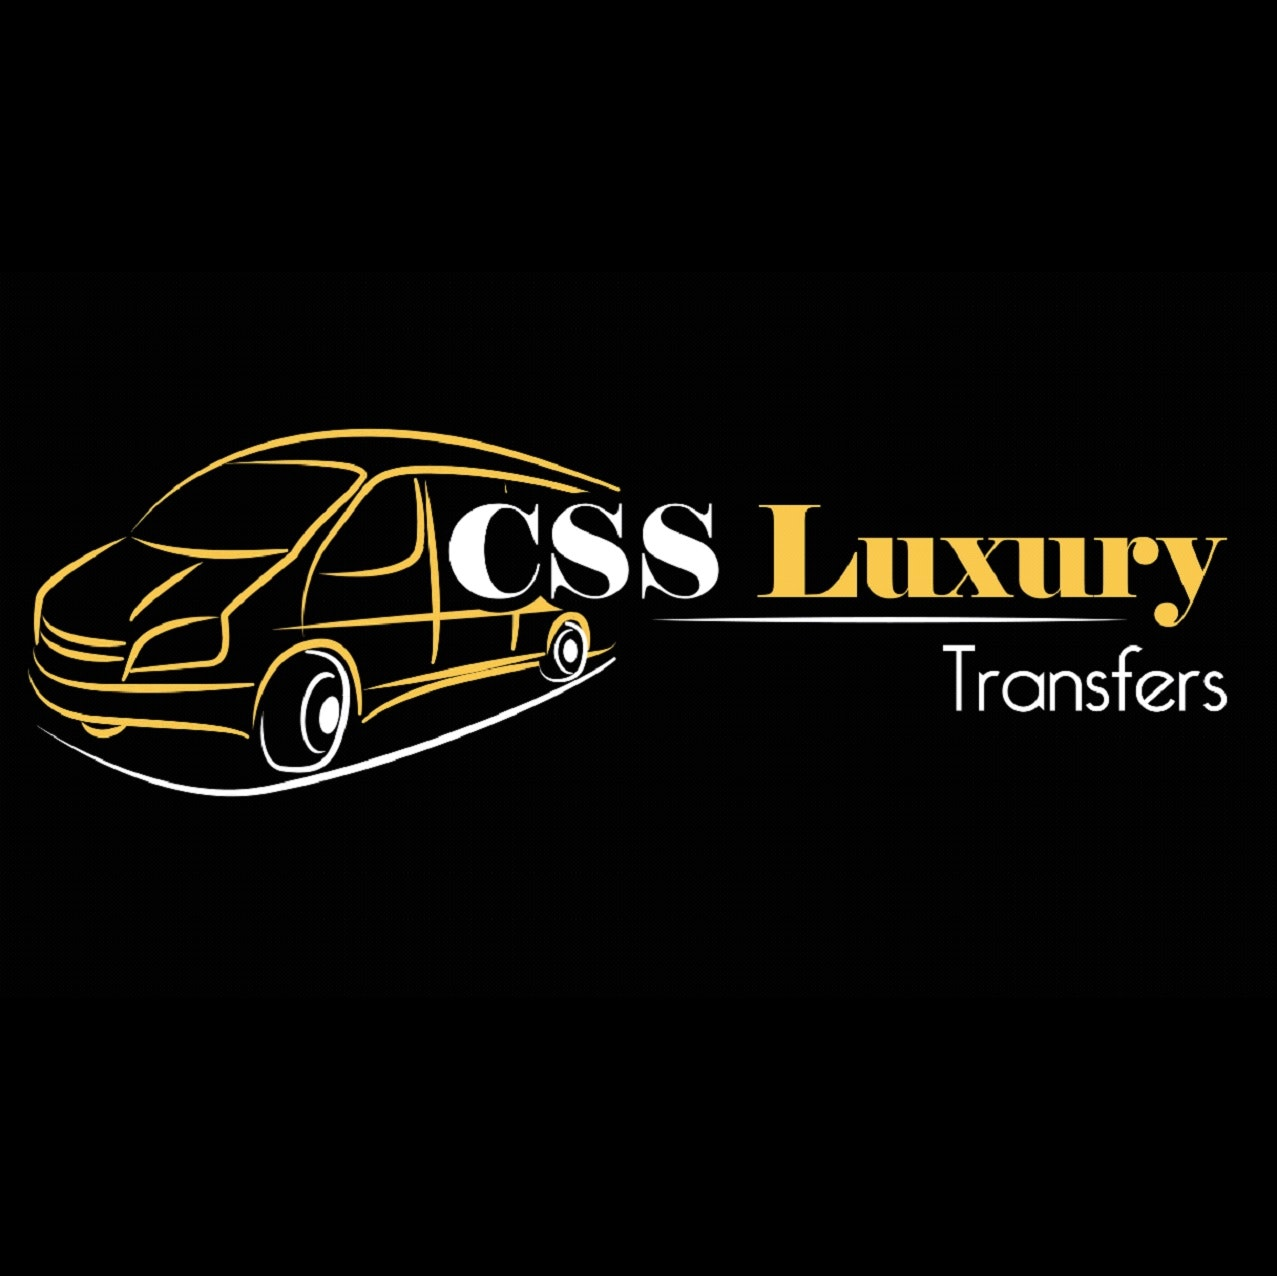 CSS Luxury Transfers logo